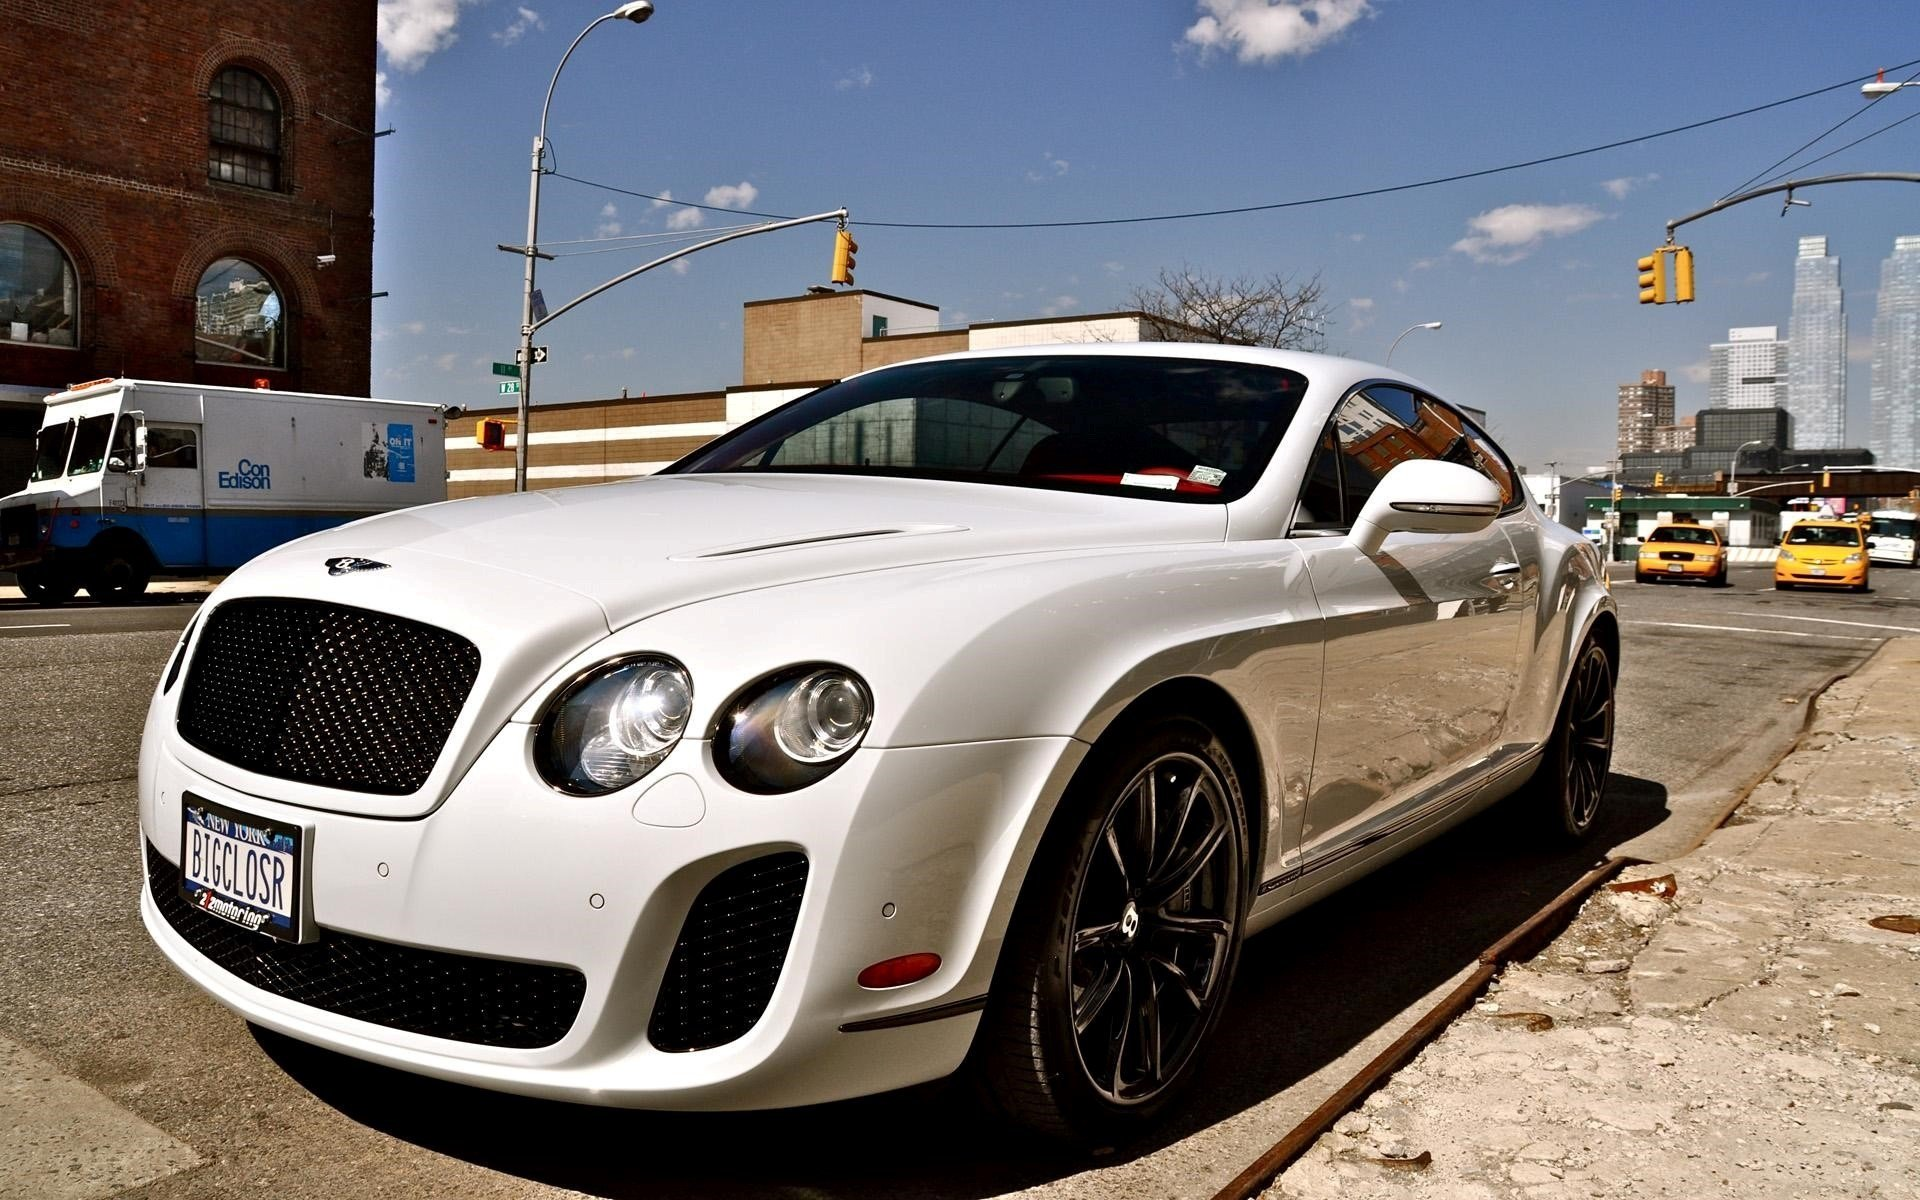 Latest Bentley Cars Hd Wallpaper – Aoutos Hd Wallpapers Free Download